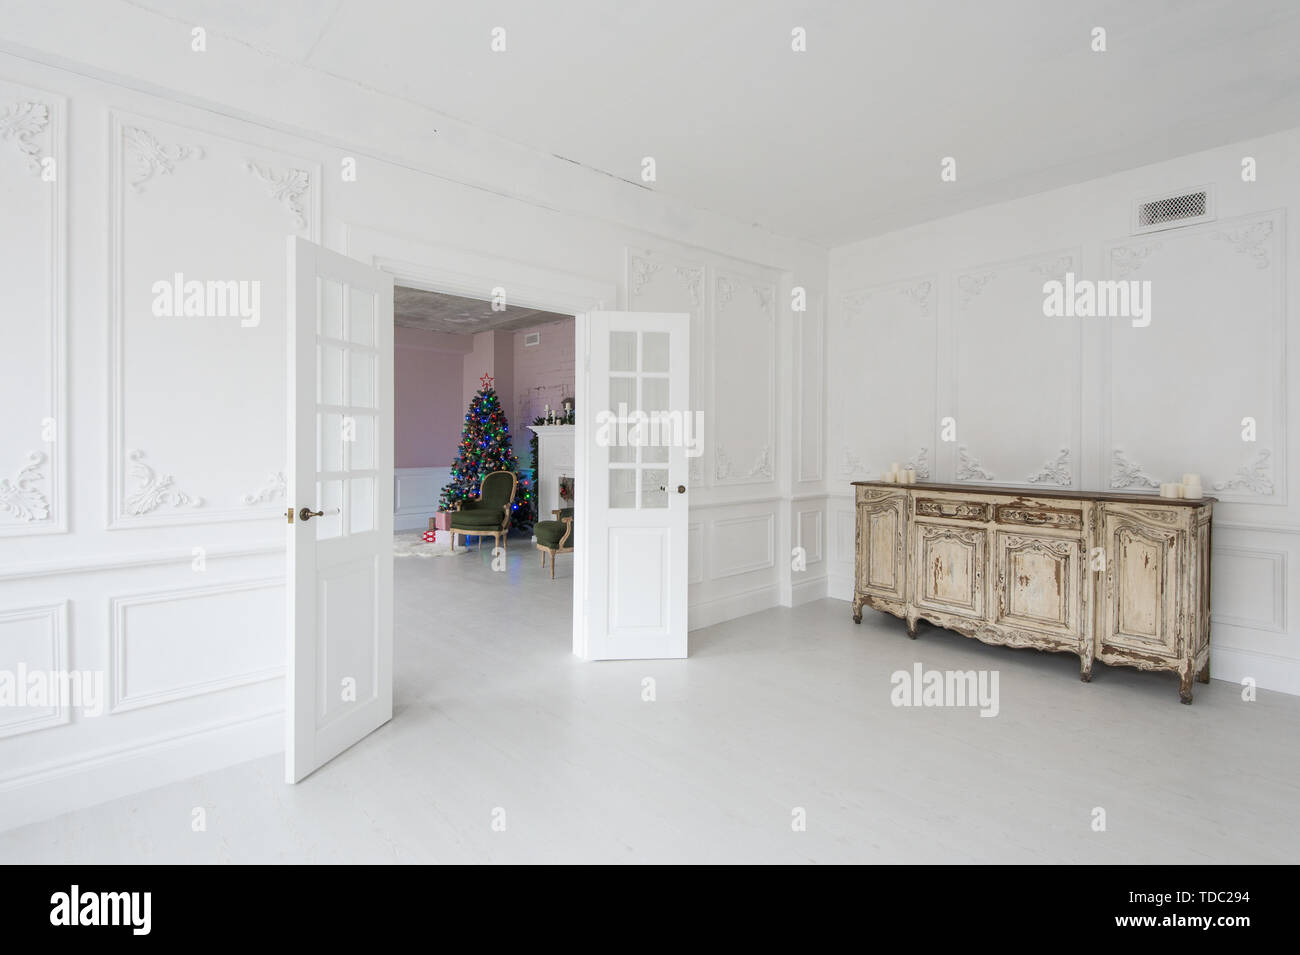 Luxurious Bright Interior With Stucco Walls, Vintage Chest Of Drawers And  Christmas Tree.